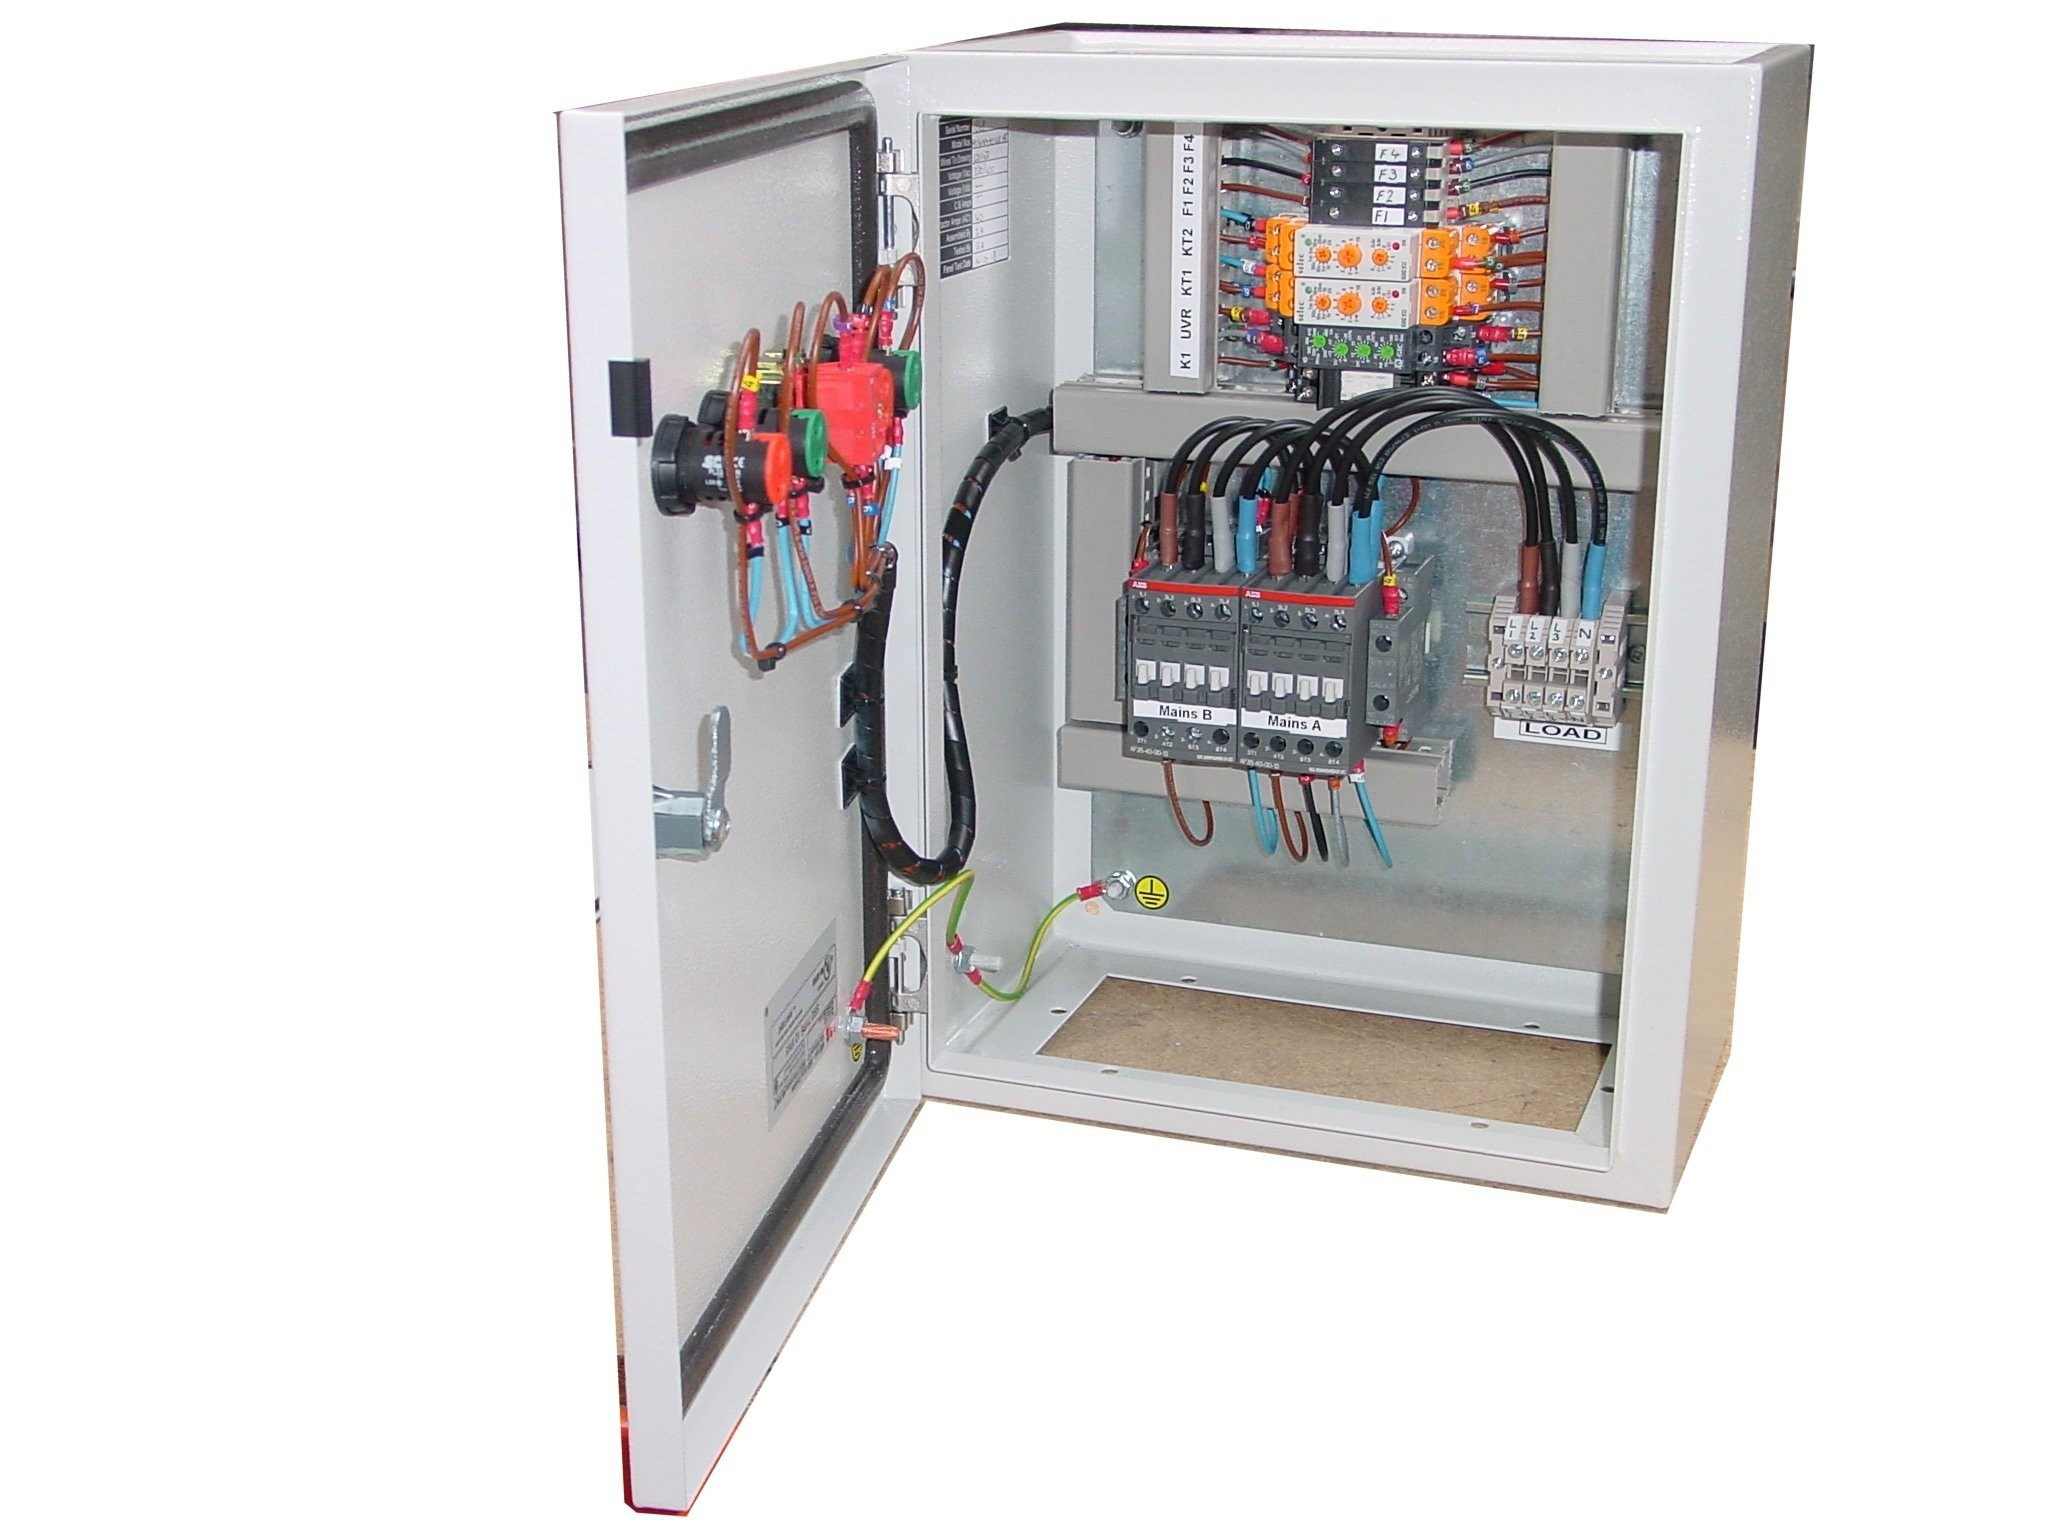 45a Automatic Transfer Switch Uvr 3 Phase 400v With Abb